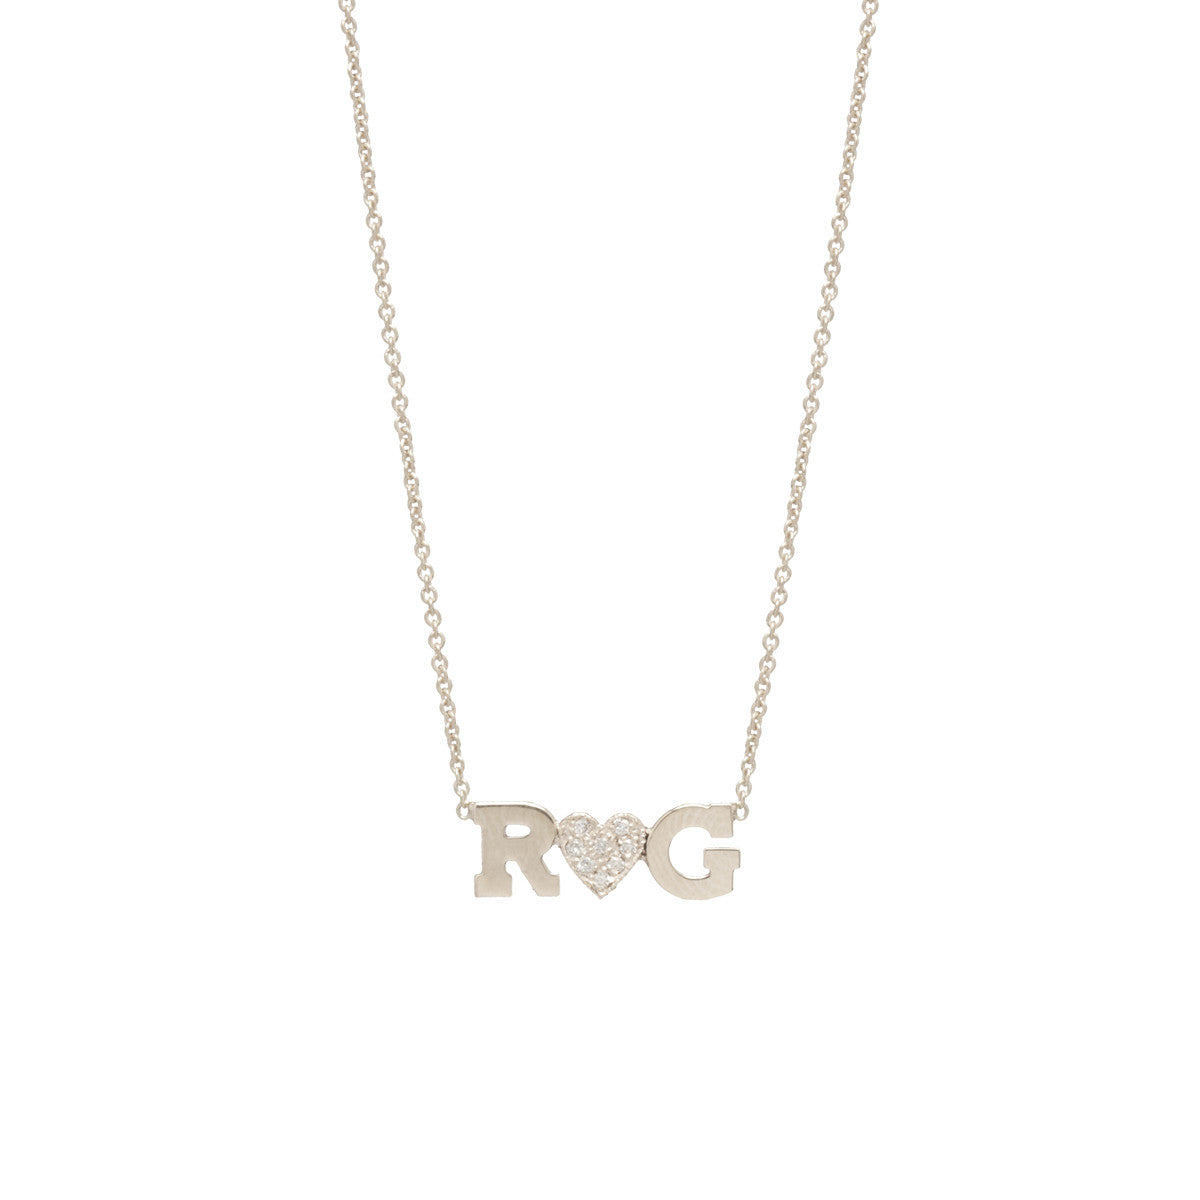 Double Letter Necklace with Pave Diamond Heart - Stephanie Gottlieb